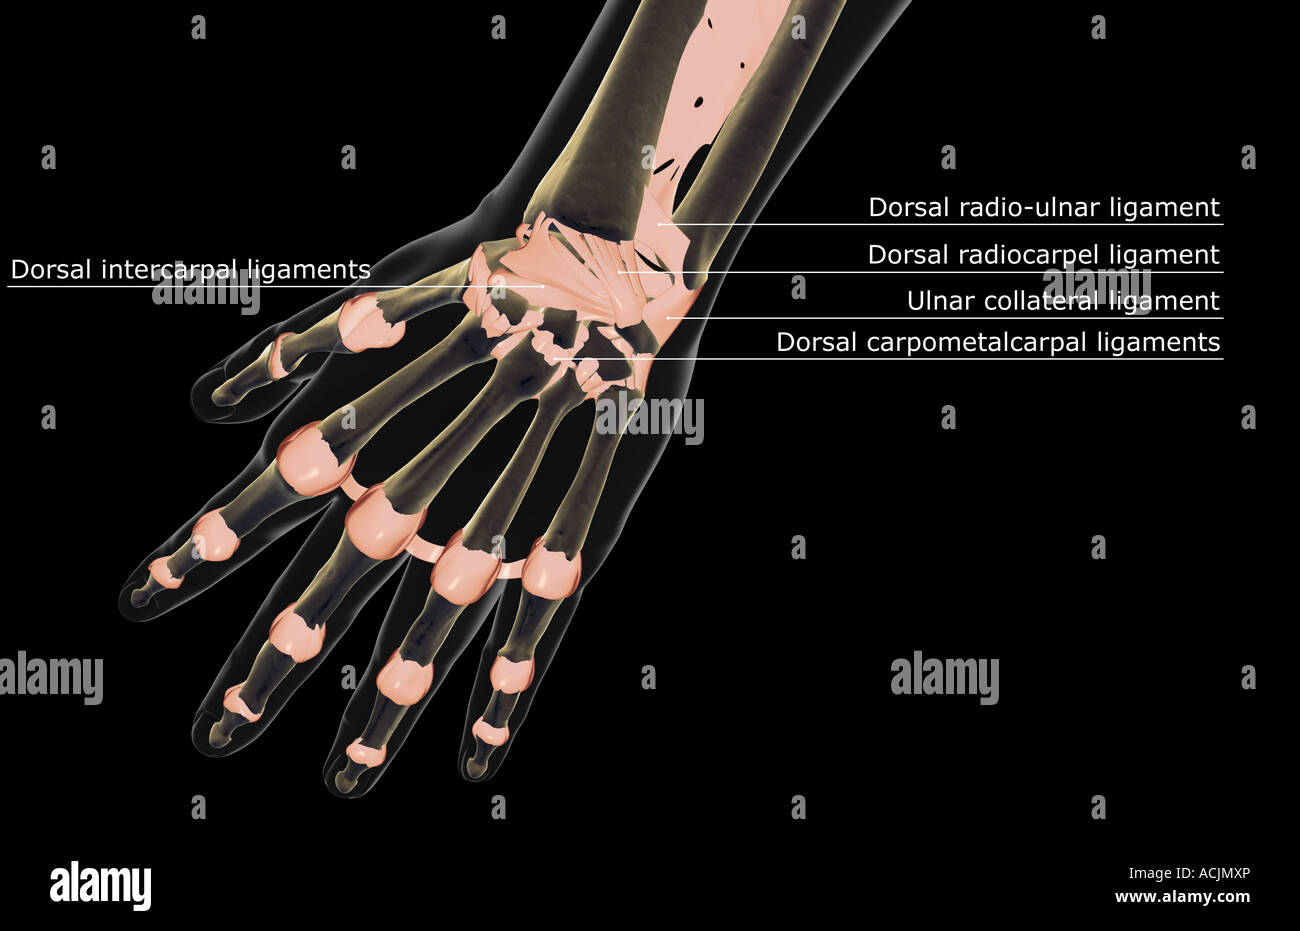 The Ligaments Of The Hand Stock Photo 13171965 Alamy